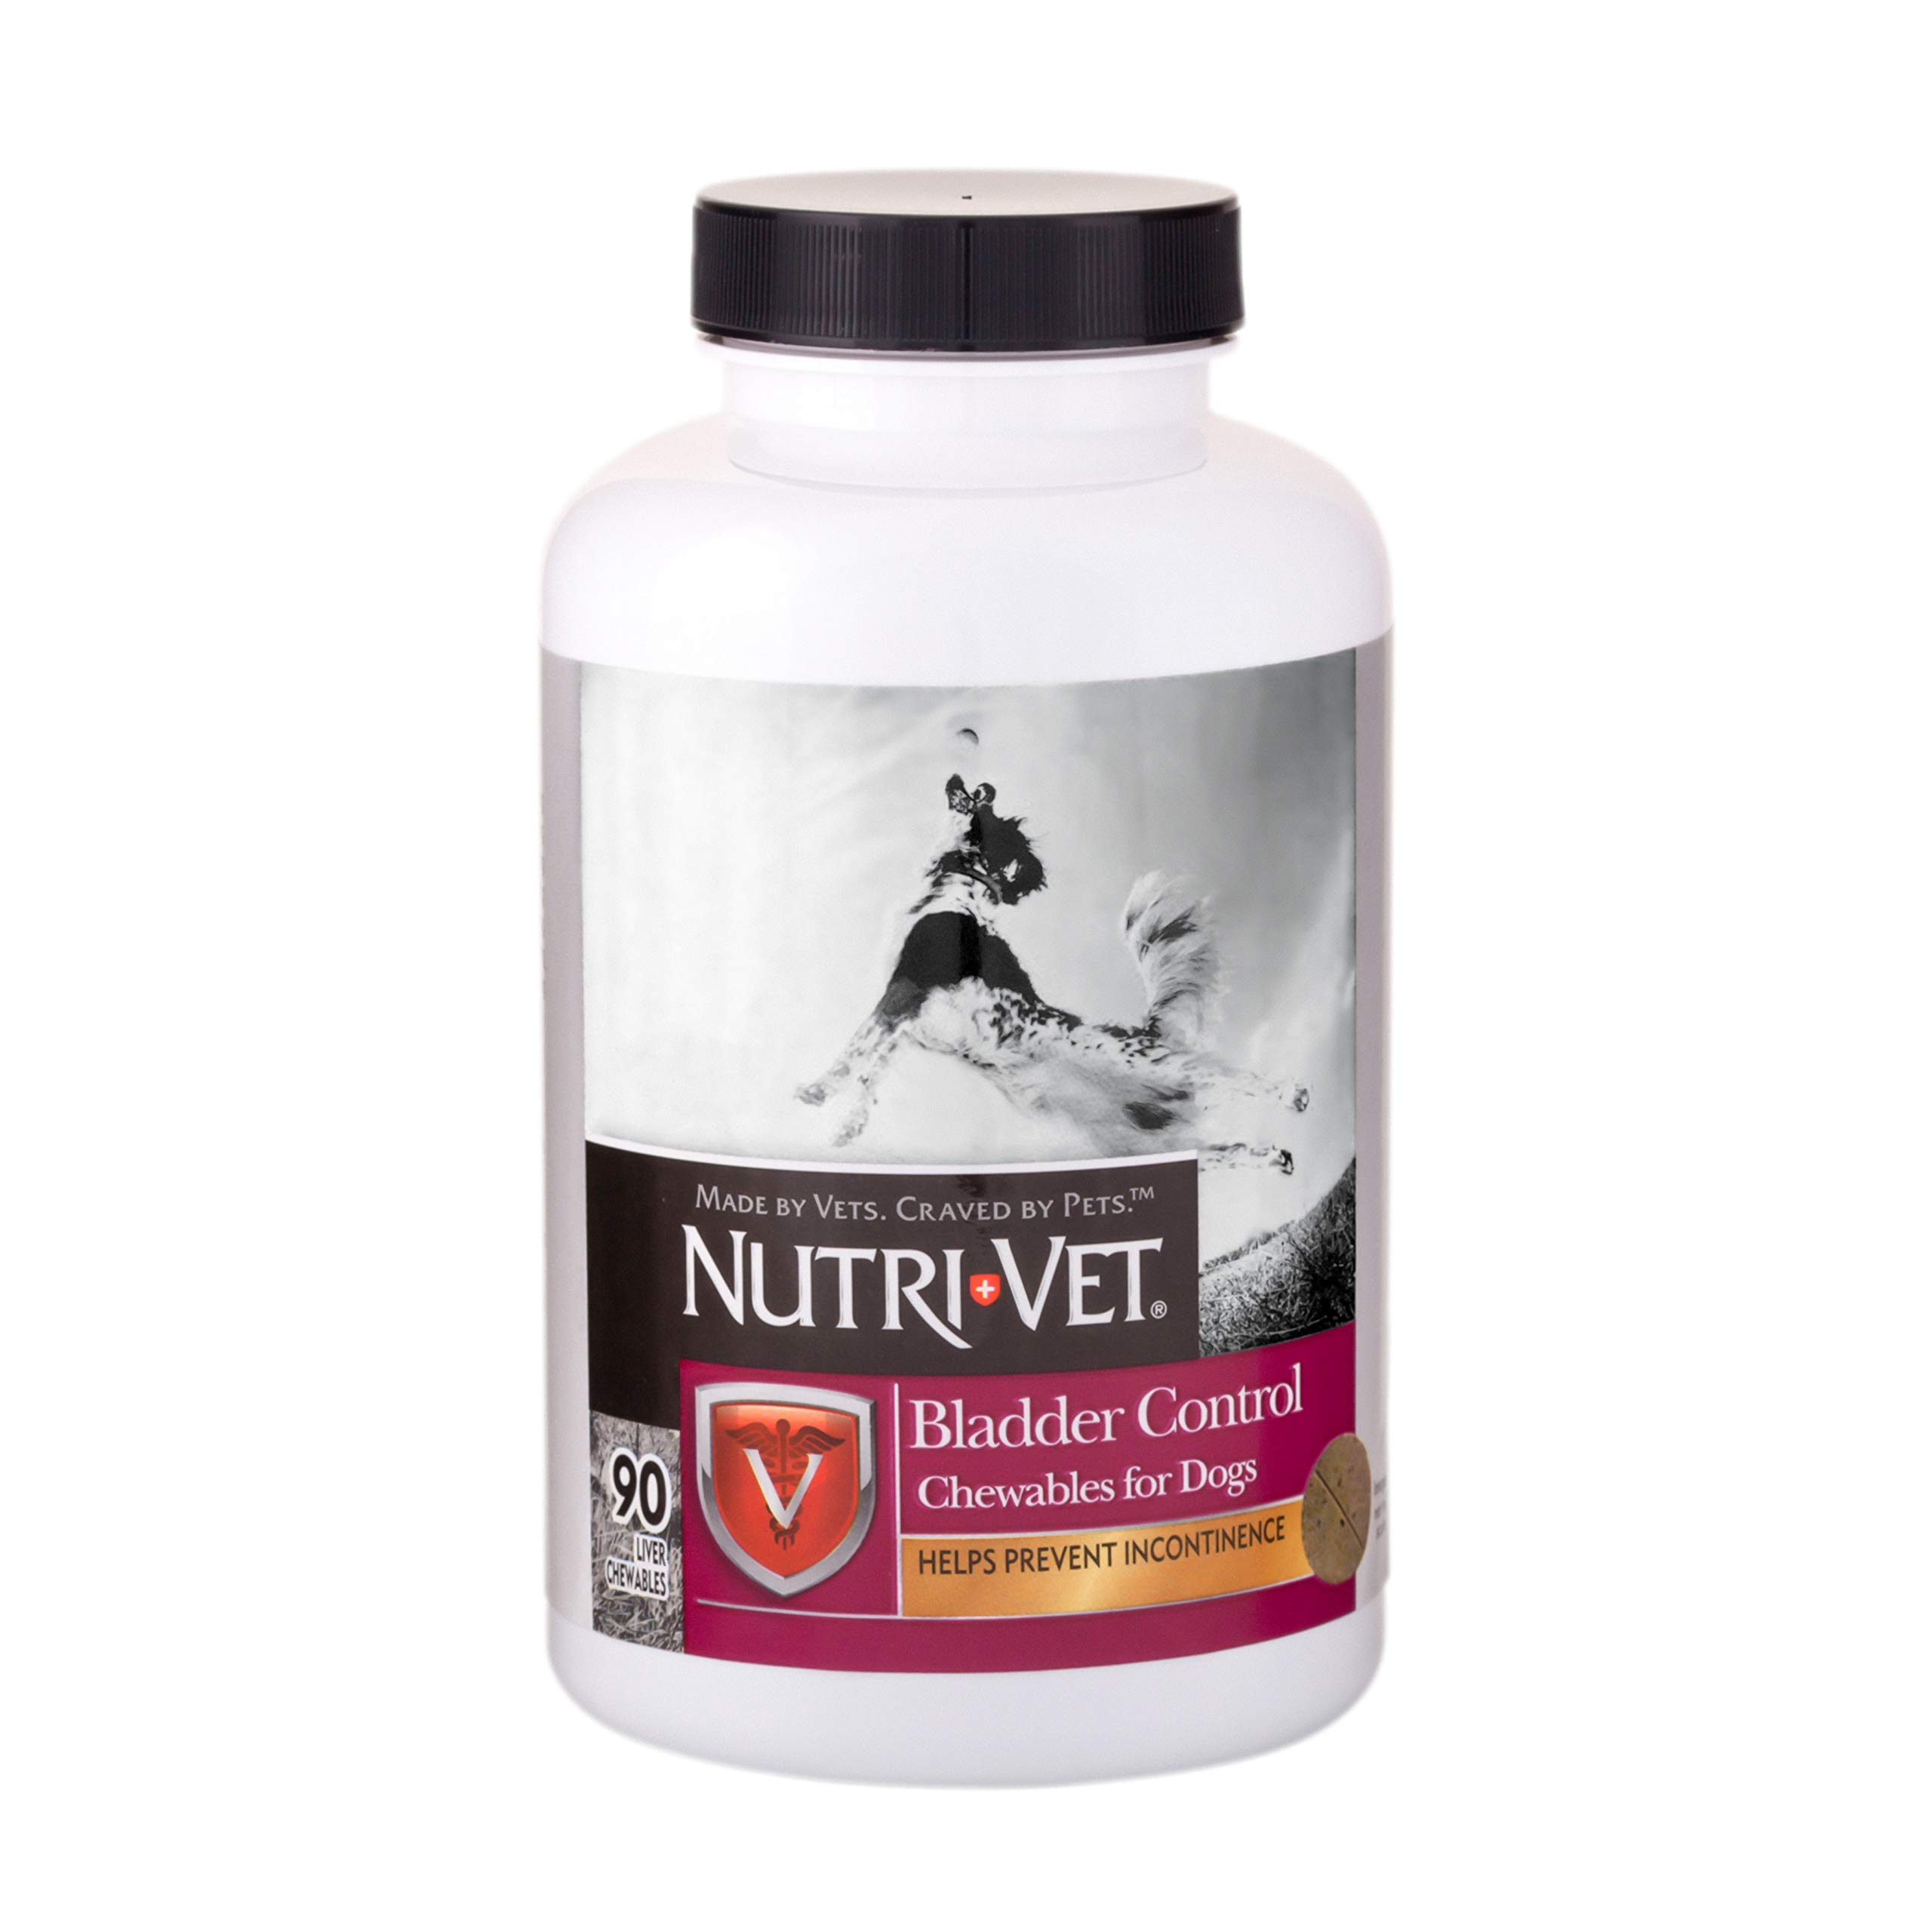 Nutri-Vet Bladder Control Liver Chewables, 90 count